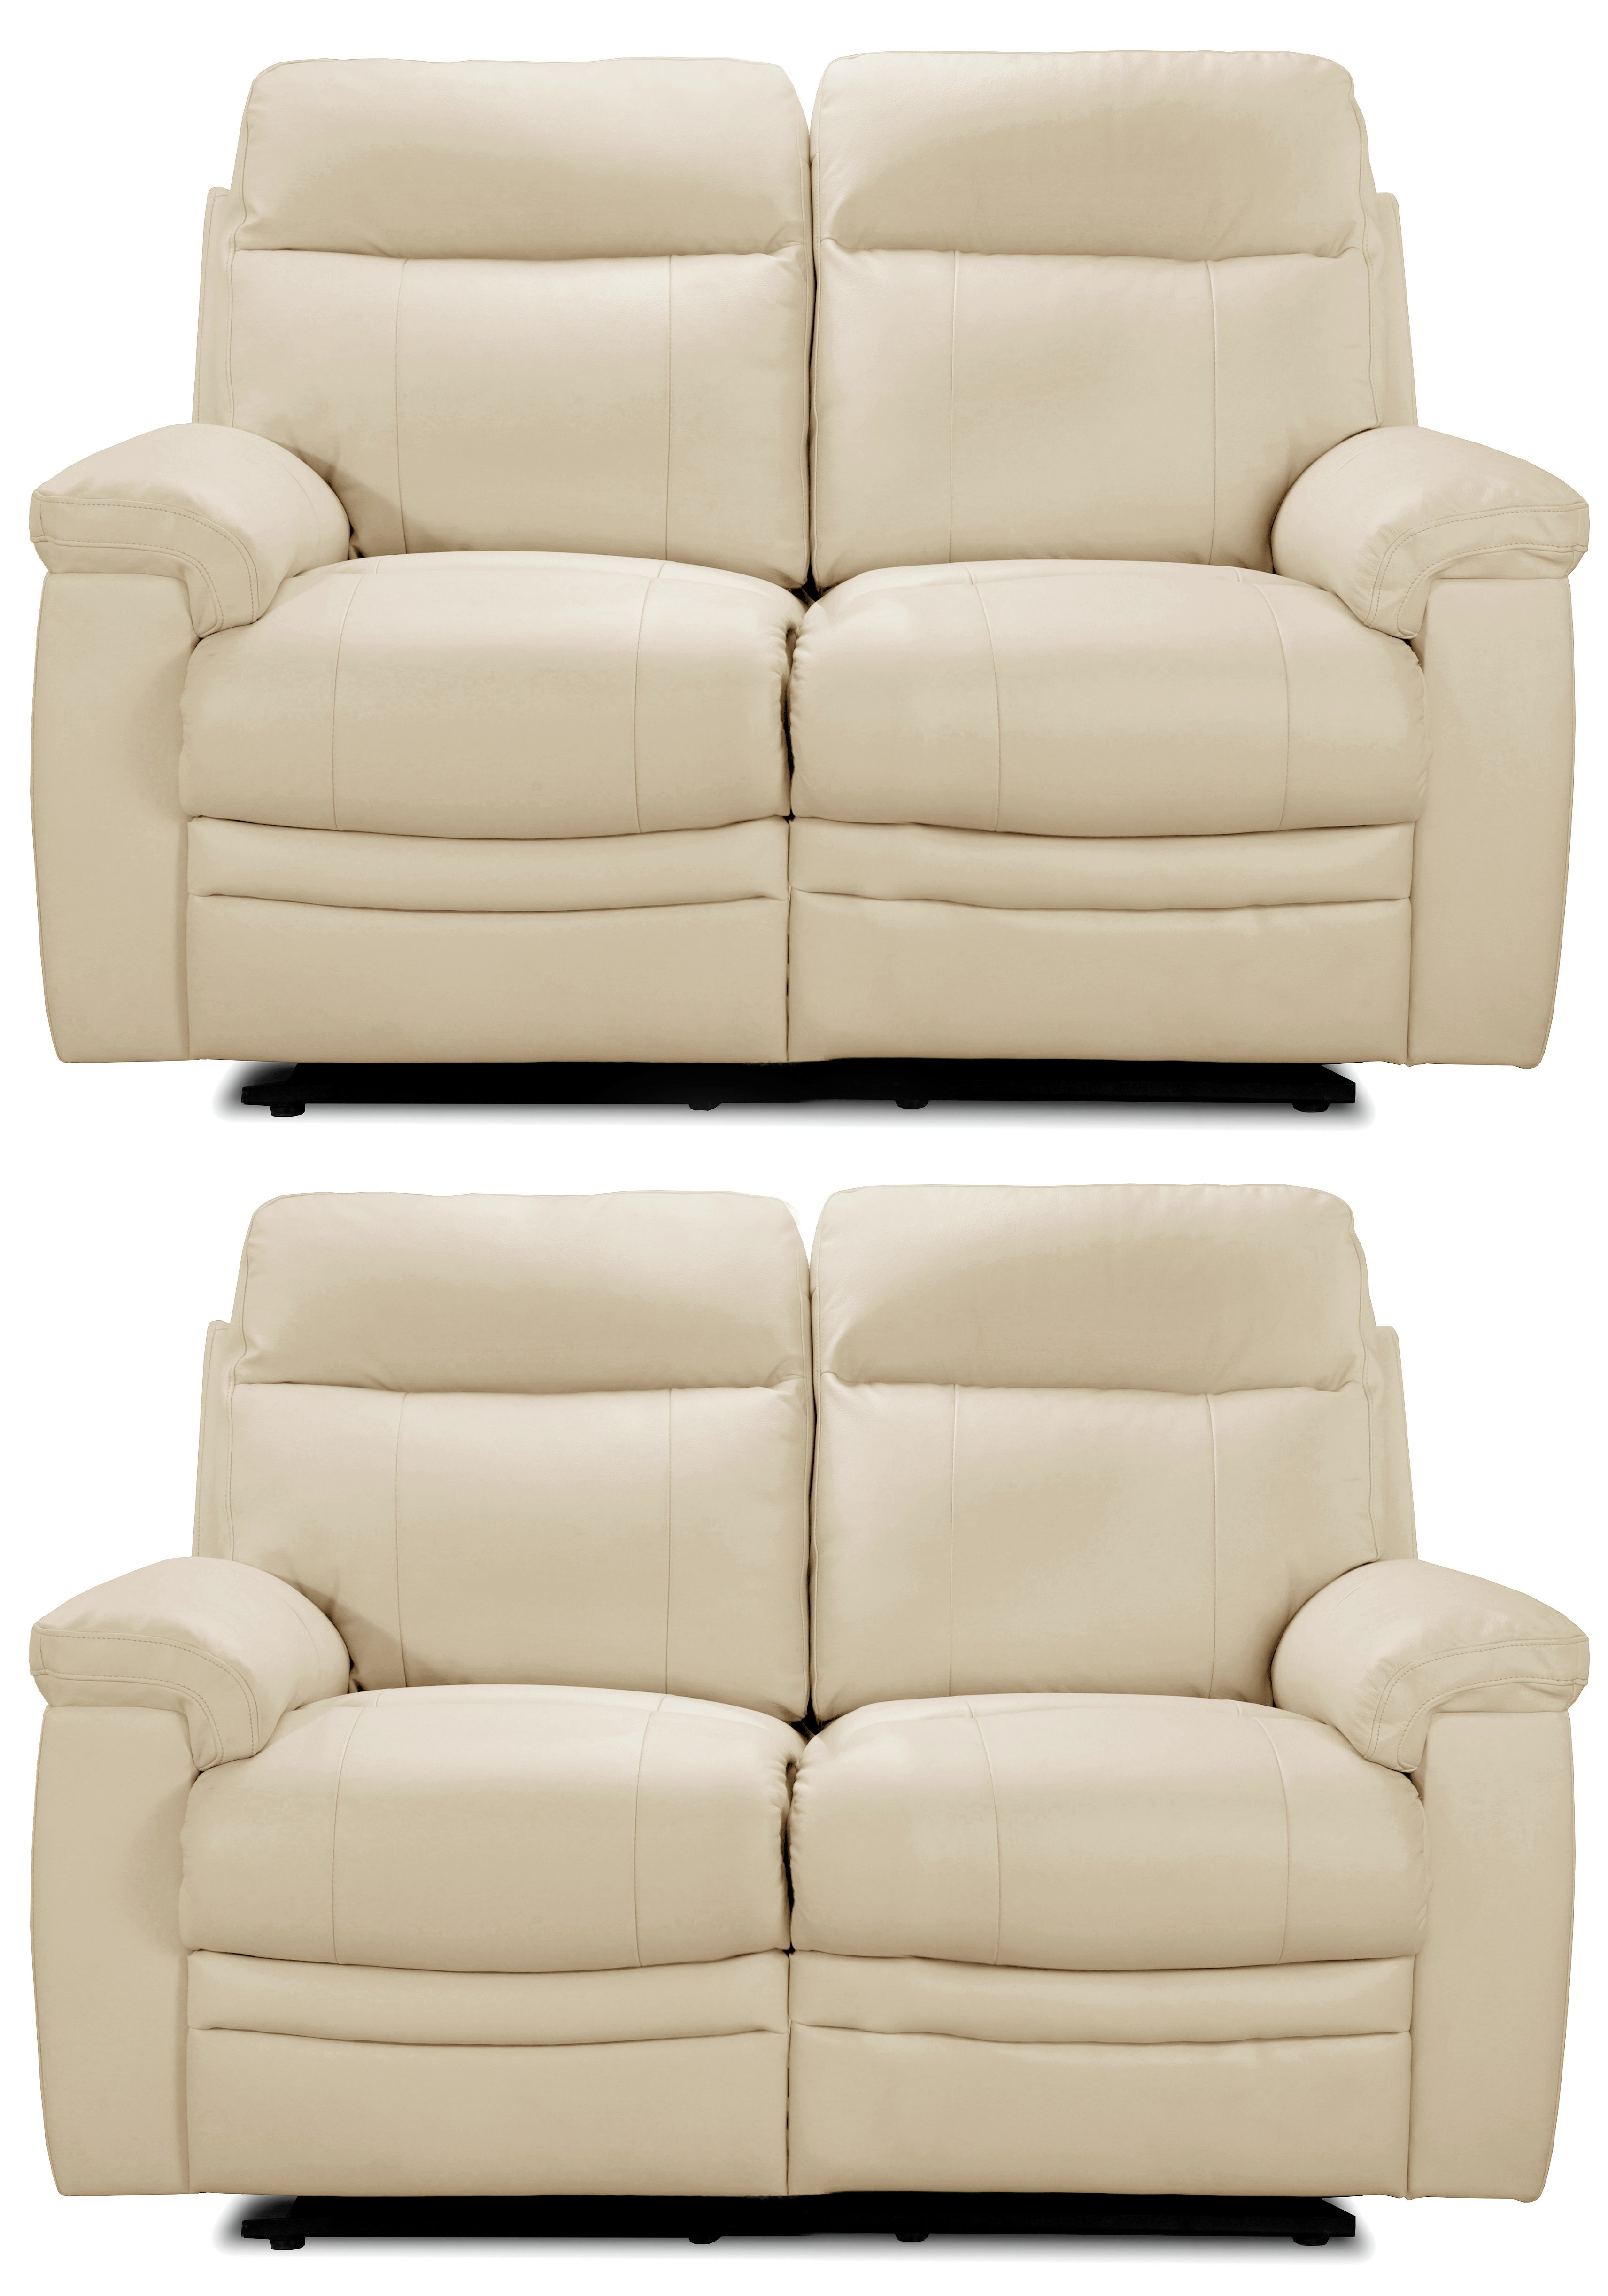 Collection - New Paolo Reg and Reg Recliner - Sofa - Ivory